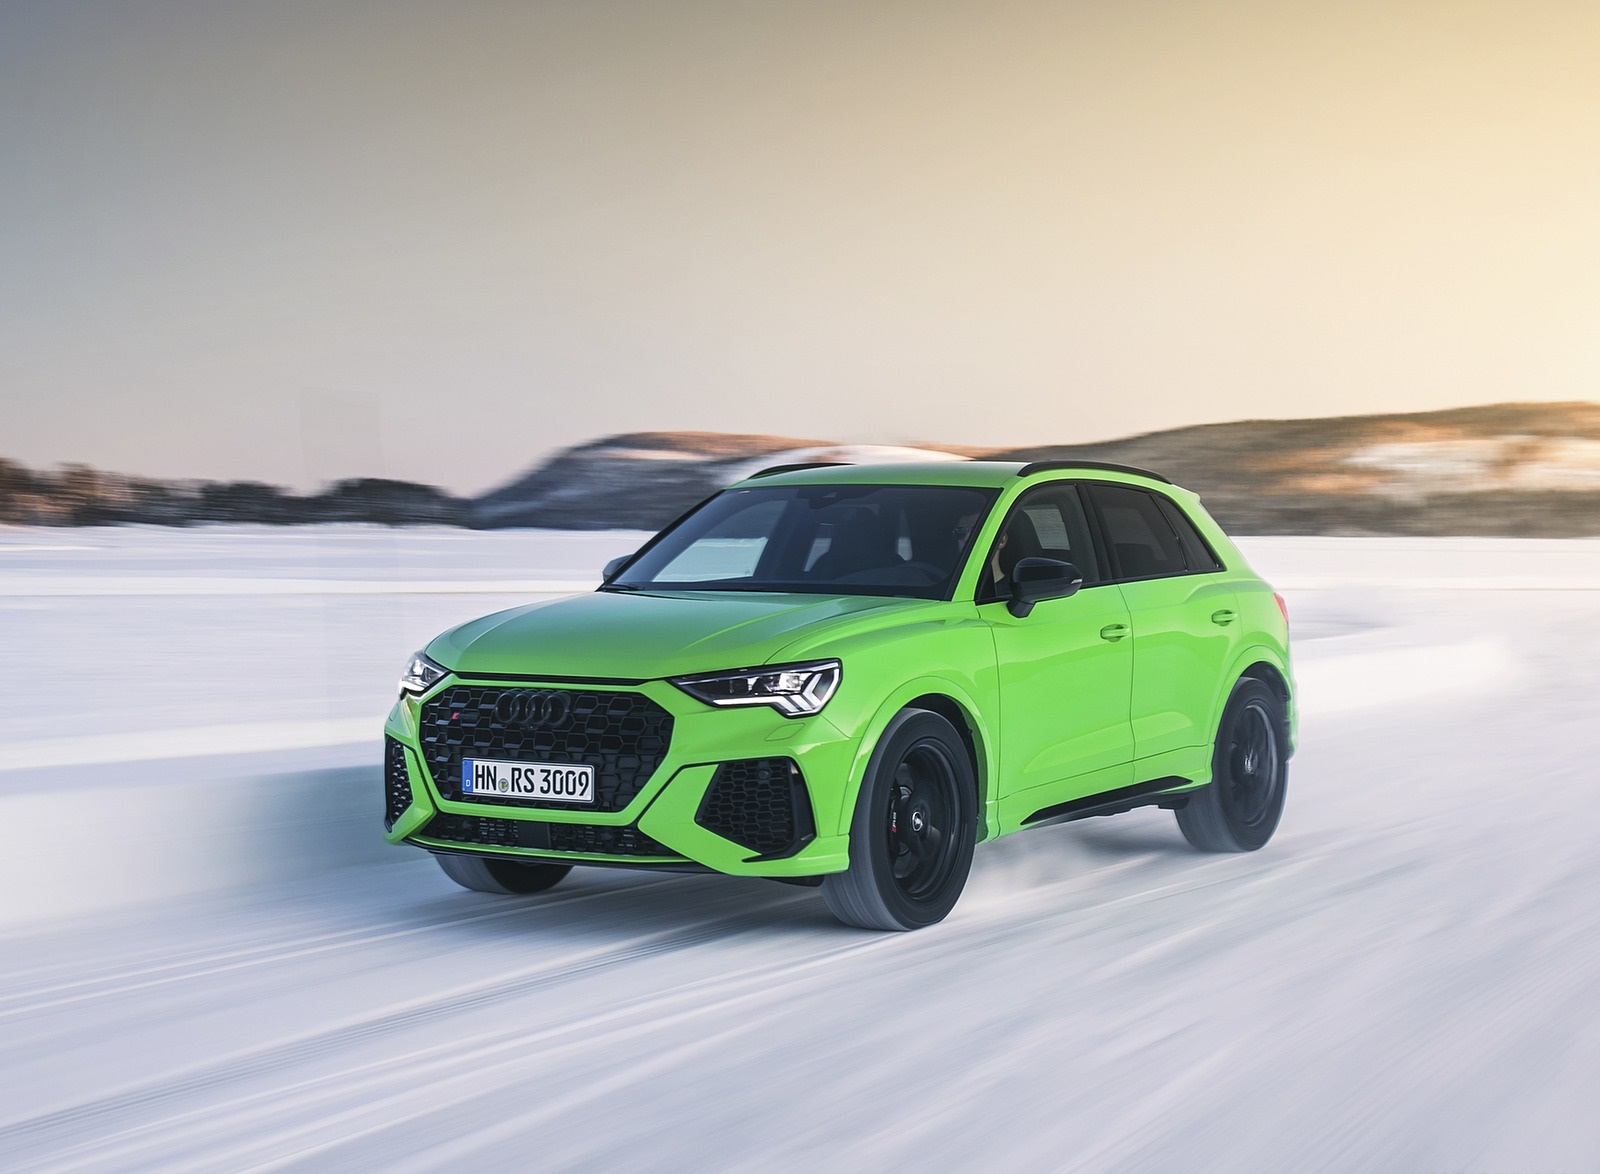 2020 Audi RS Q3 (Color: Kyalami Green) Front Three-Quarter Wallpapers #24 of 116